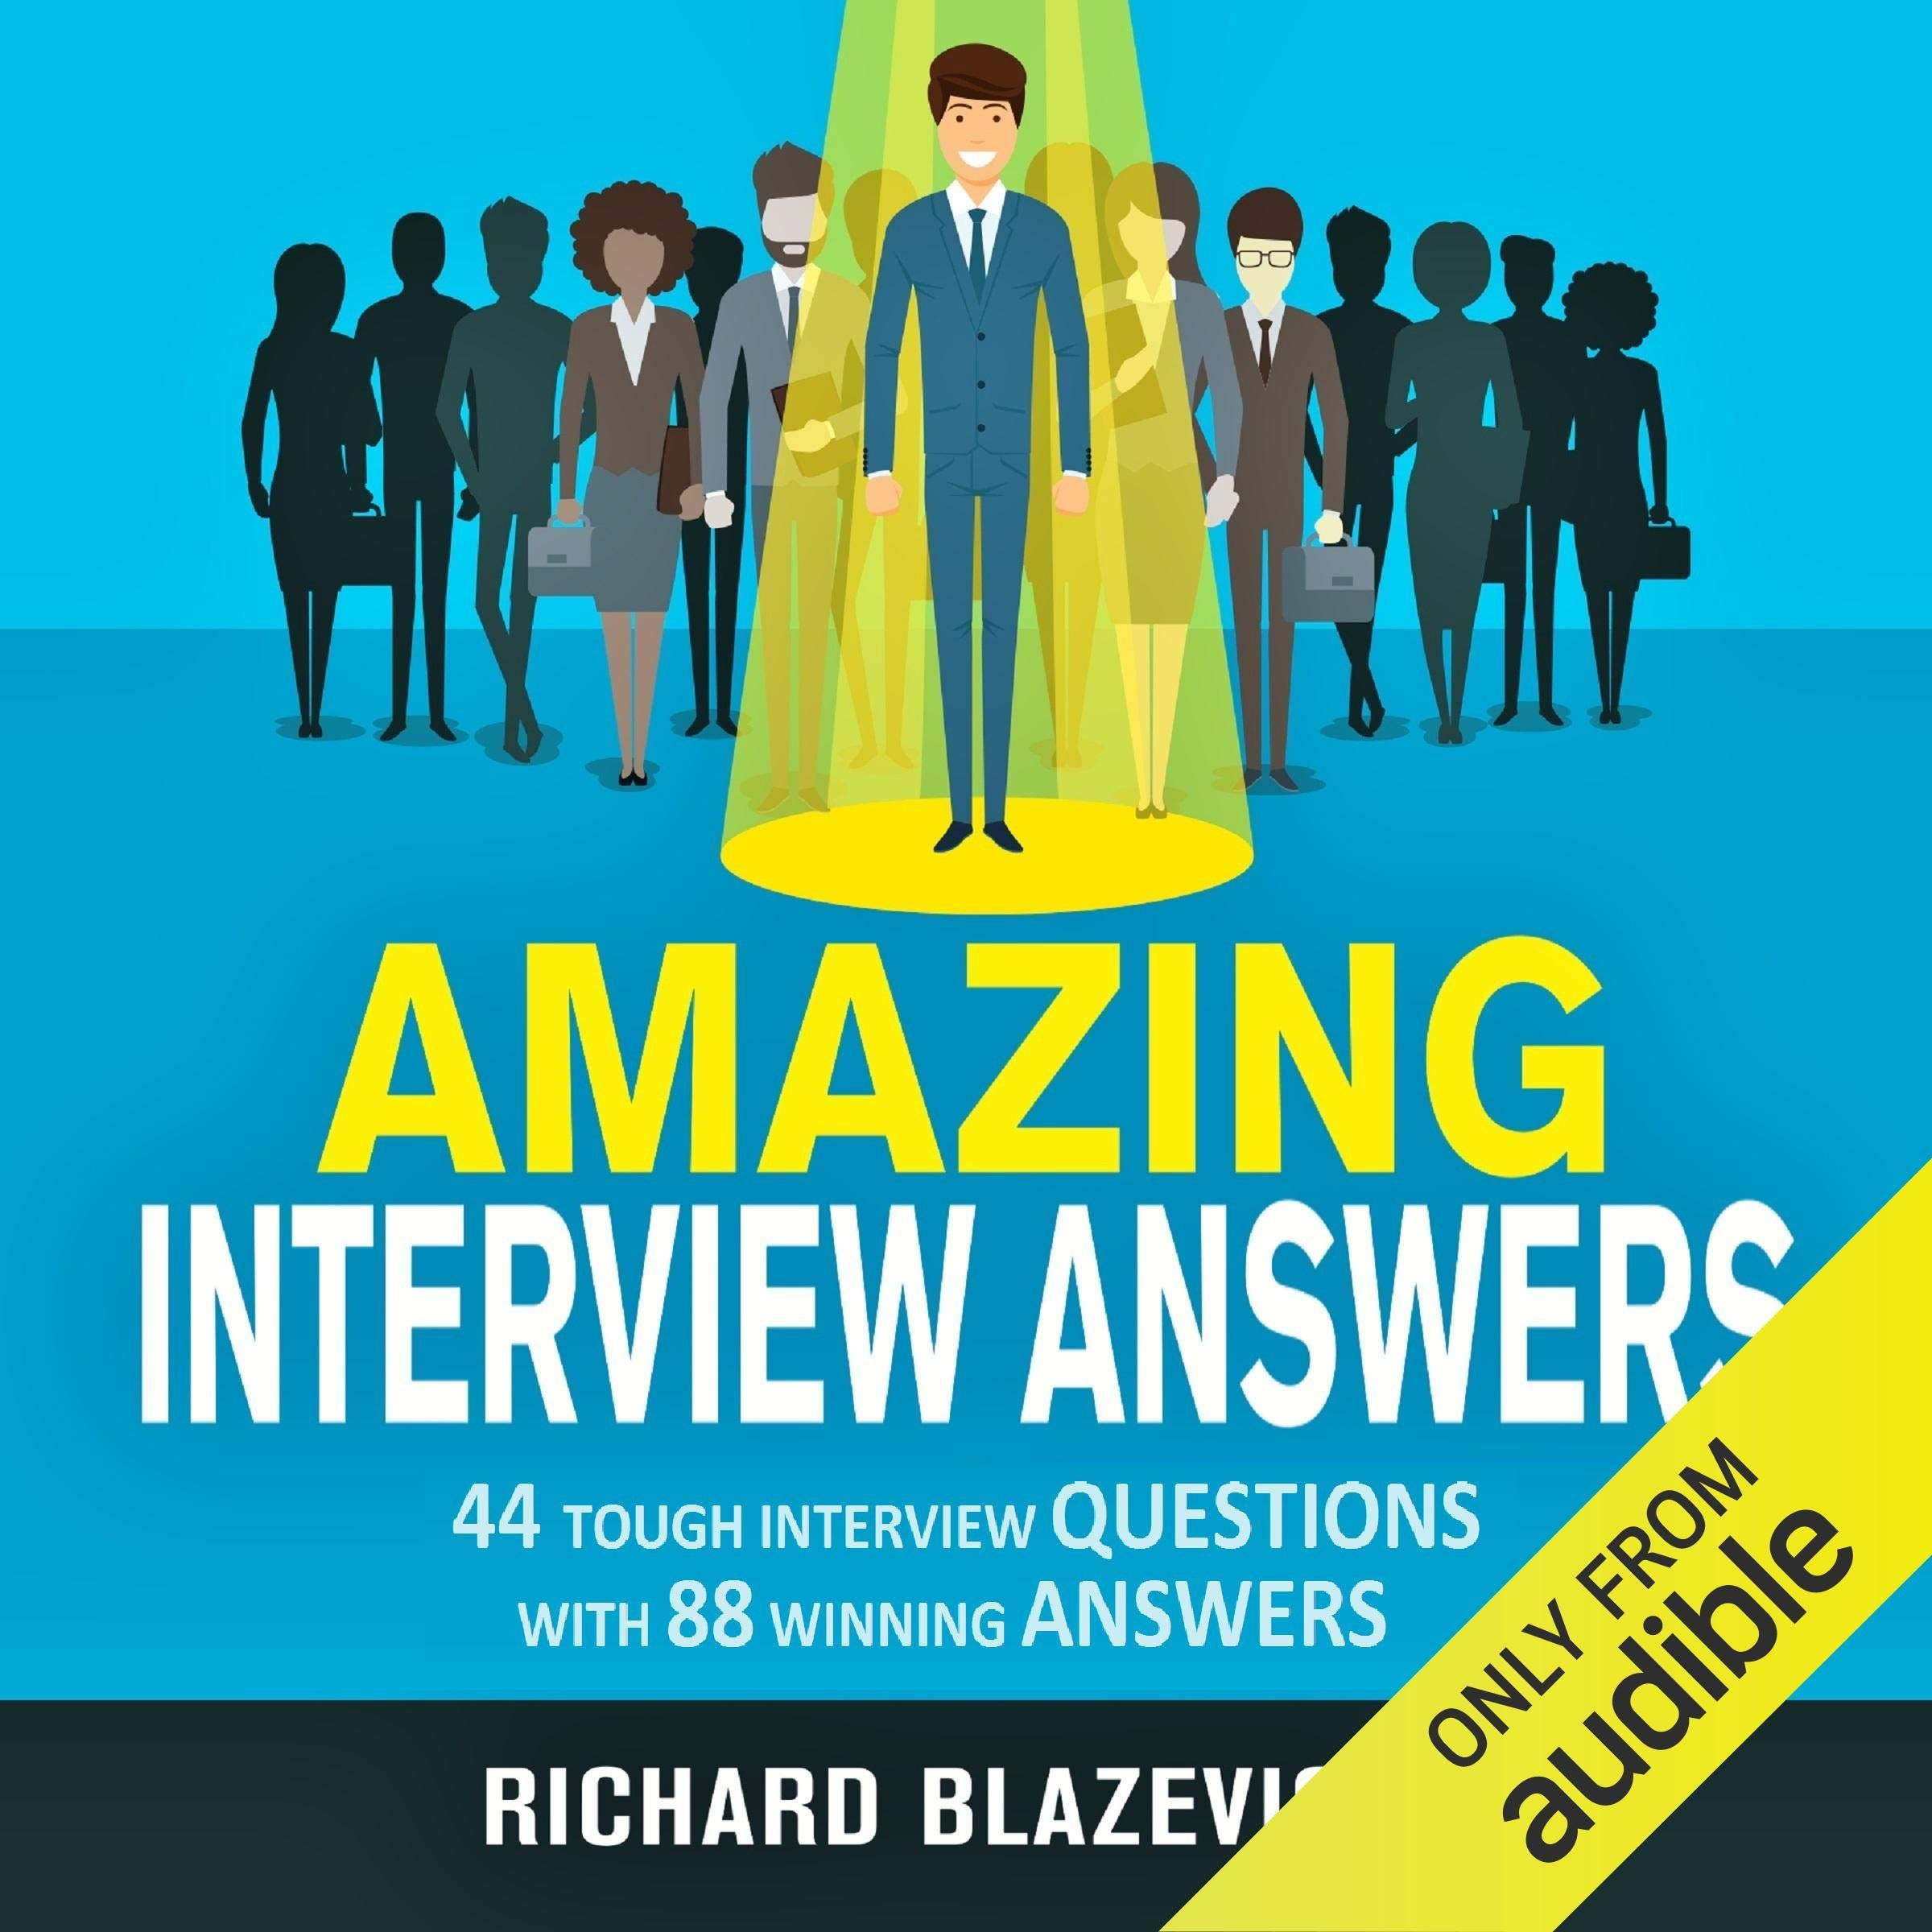 Amazing Interview Answers  44 Tough Job Interview Questions With 88 Winning Answers